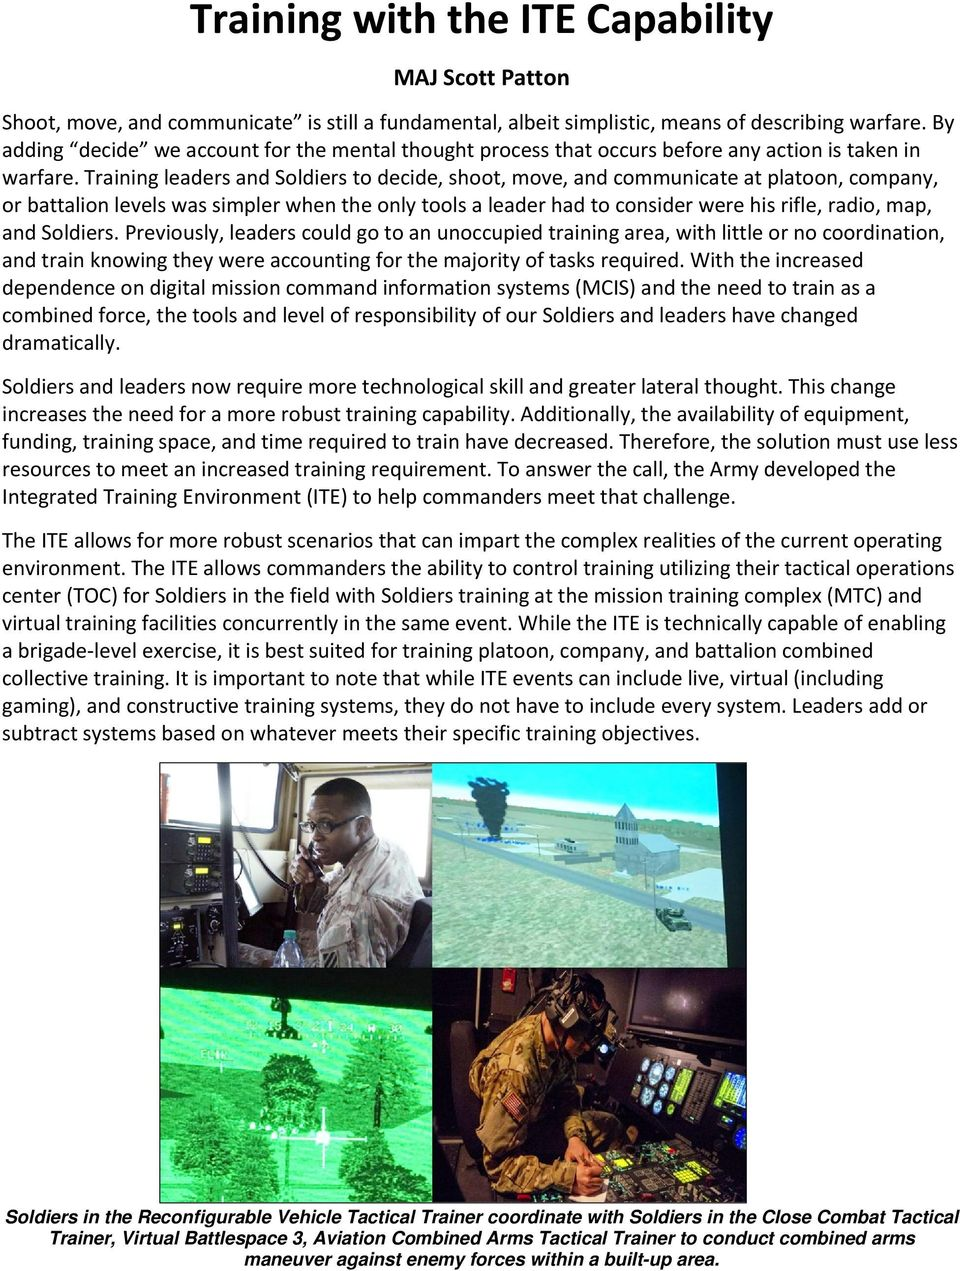 Training with the ITE Capability - PDF